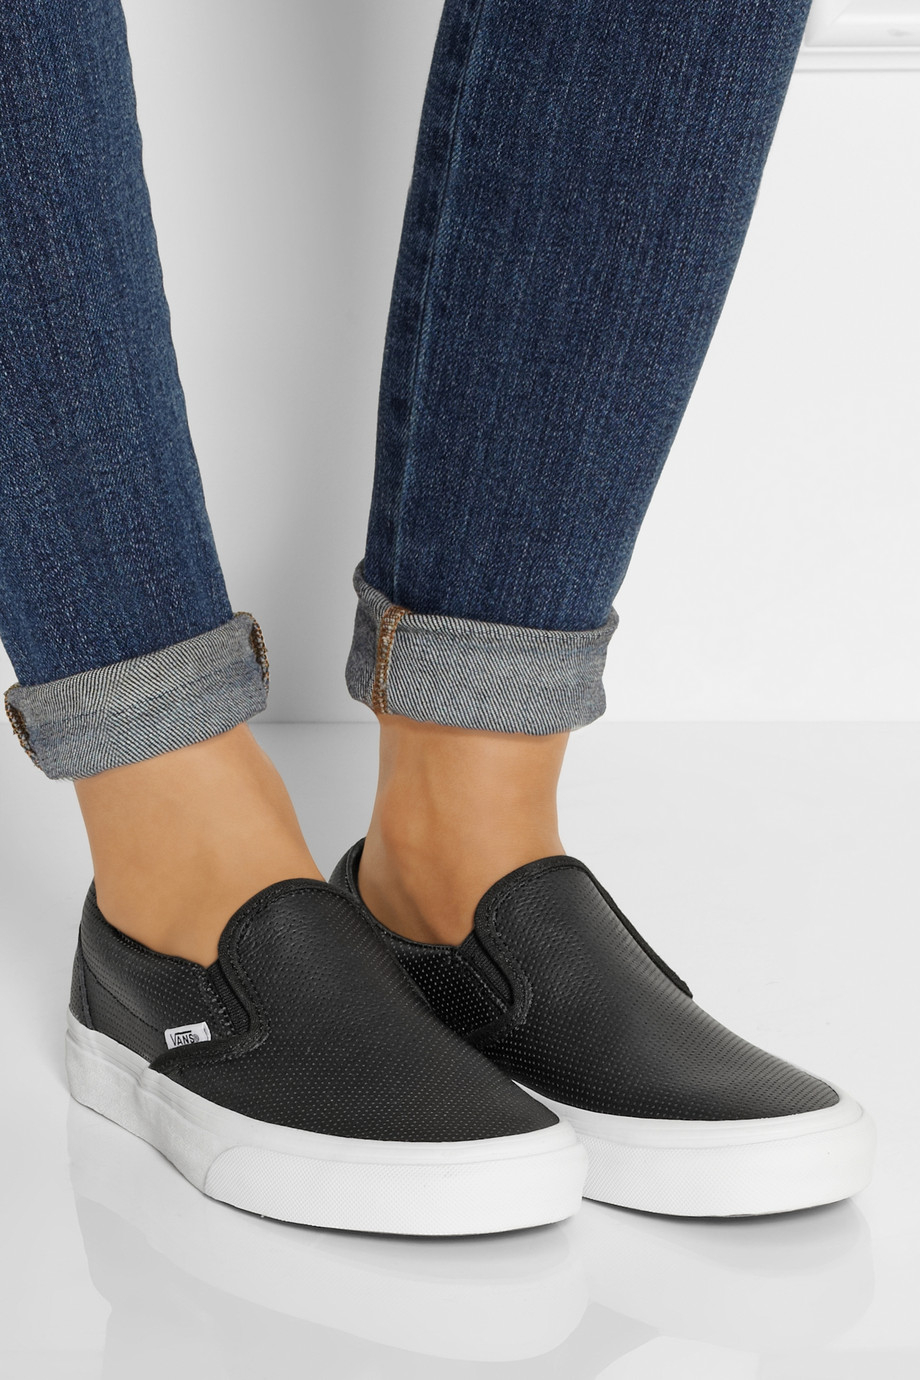 c6f85bb03e5 Lyst - Vans Perforated Leather Slip-On Sneakers in Black